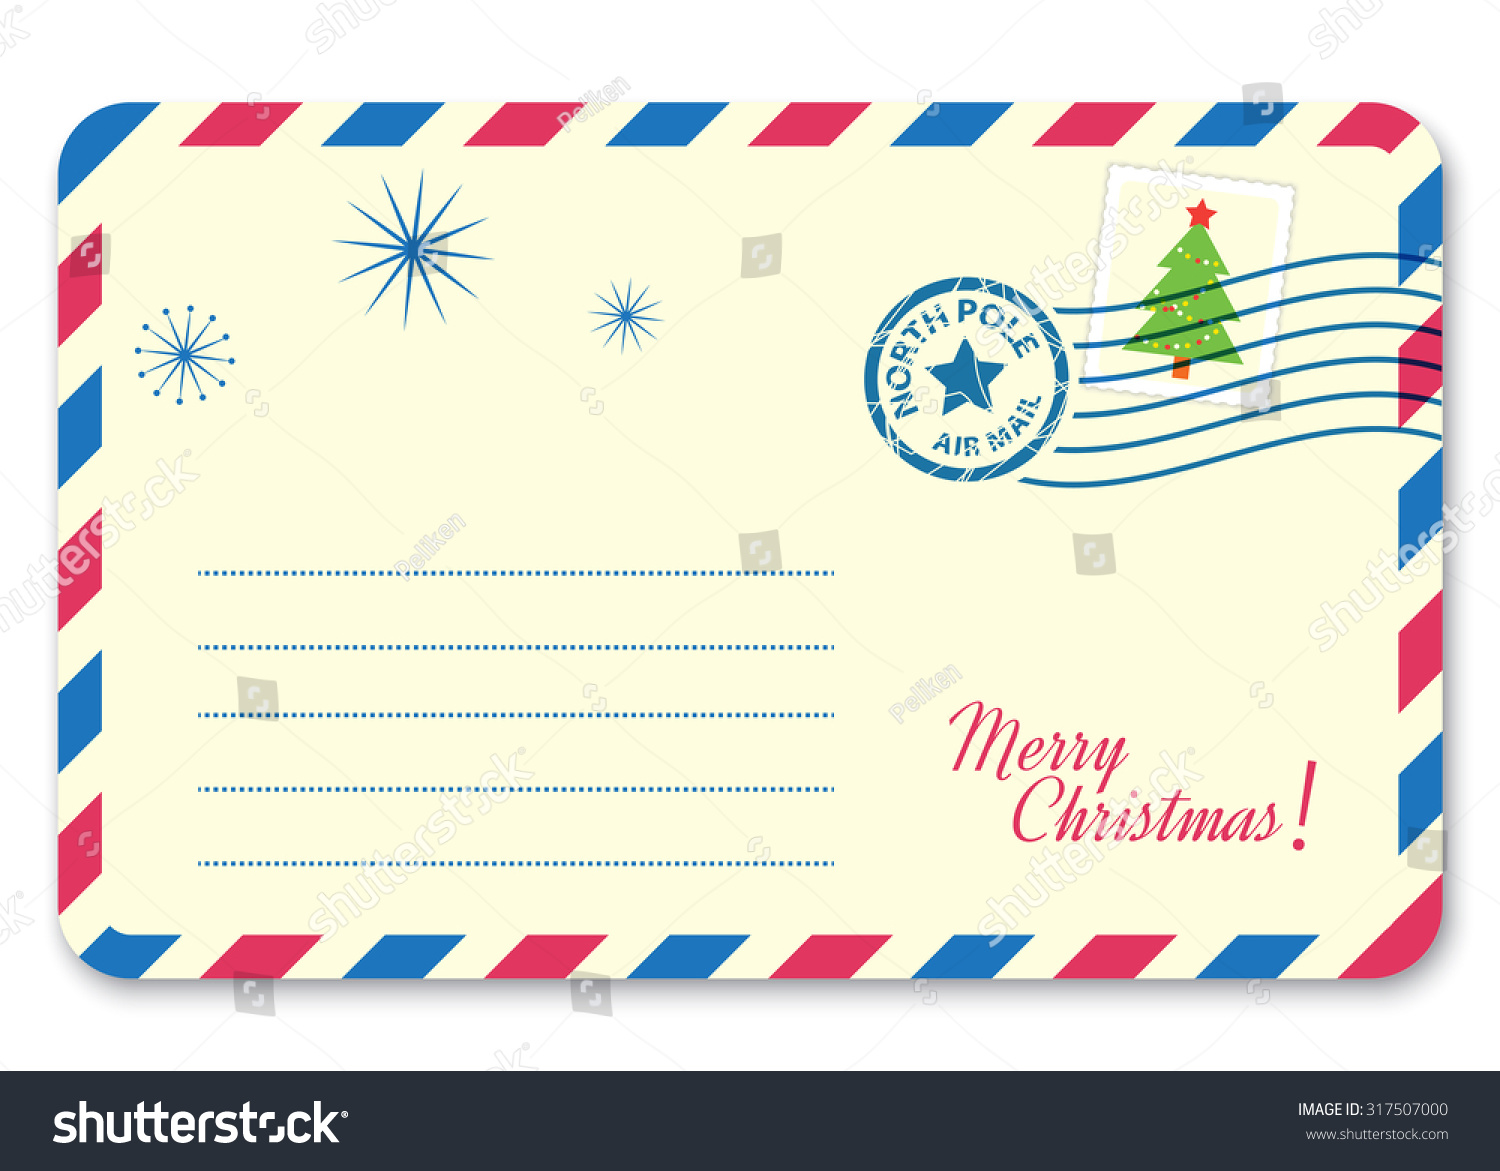 Template New Years Letter Santa Claus Stock Vector (Royalty Free ...